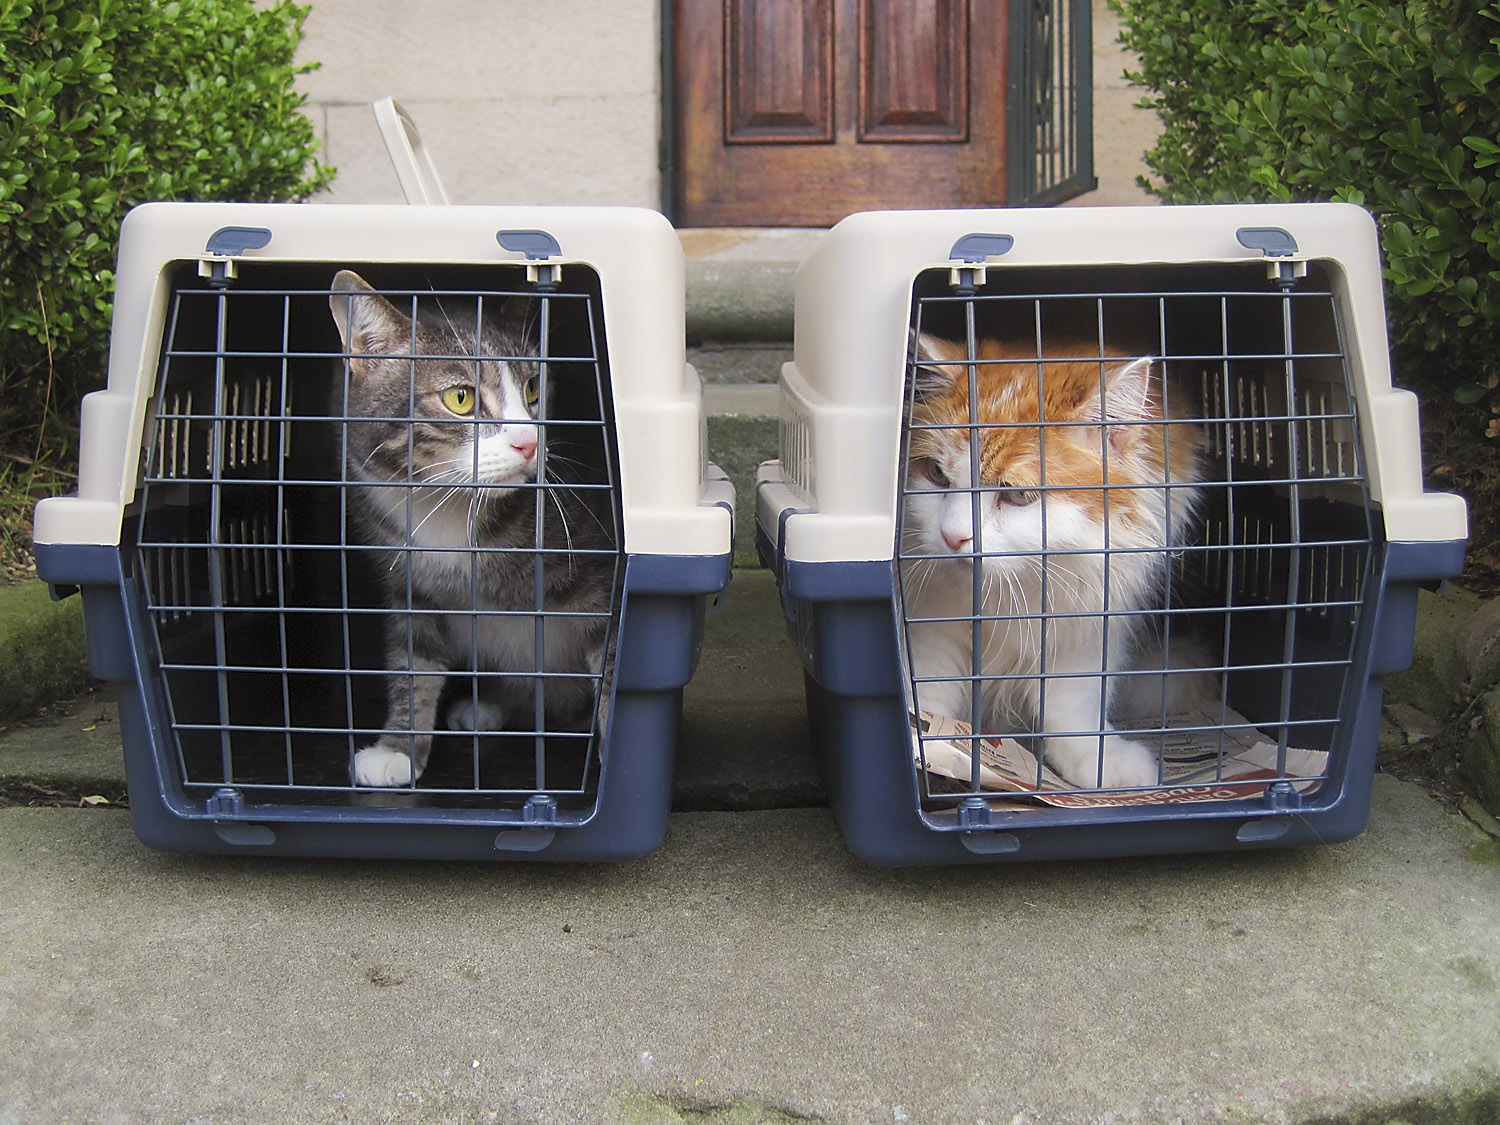 Peanut (left) and Rupert (right) waiting for the limo